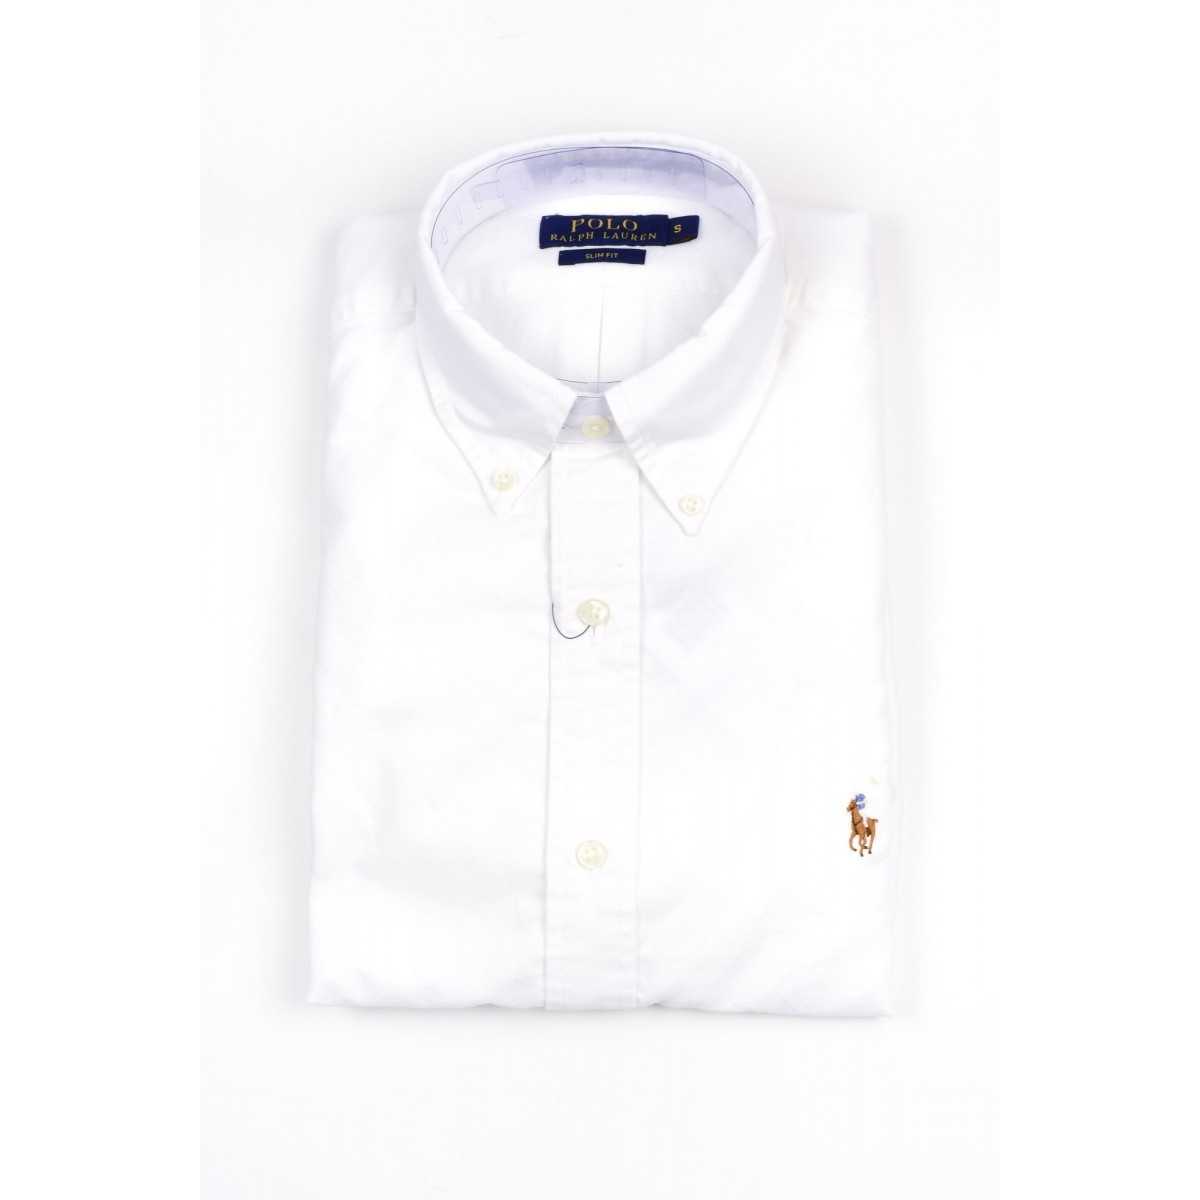 Shirt Ralph Lauren Man - A04Wsl3Pc5179